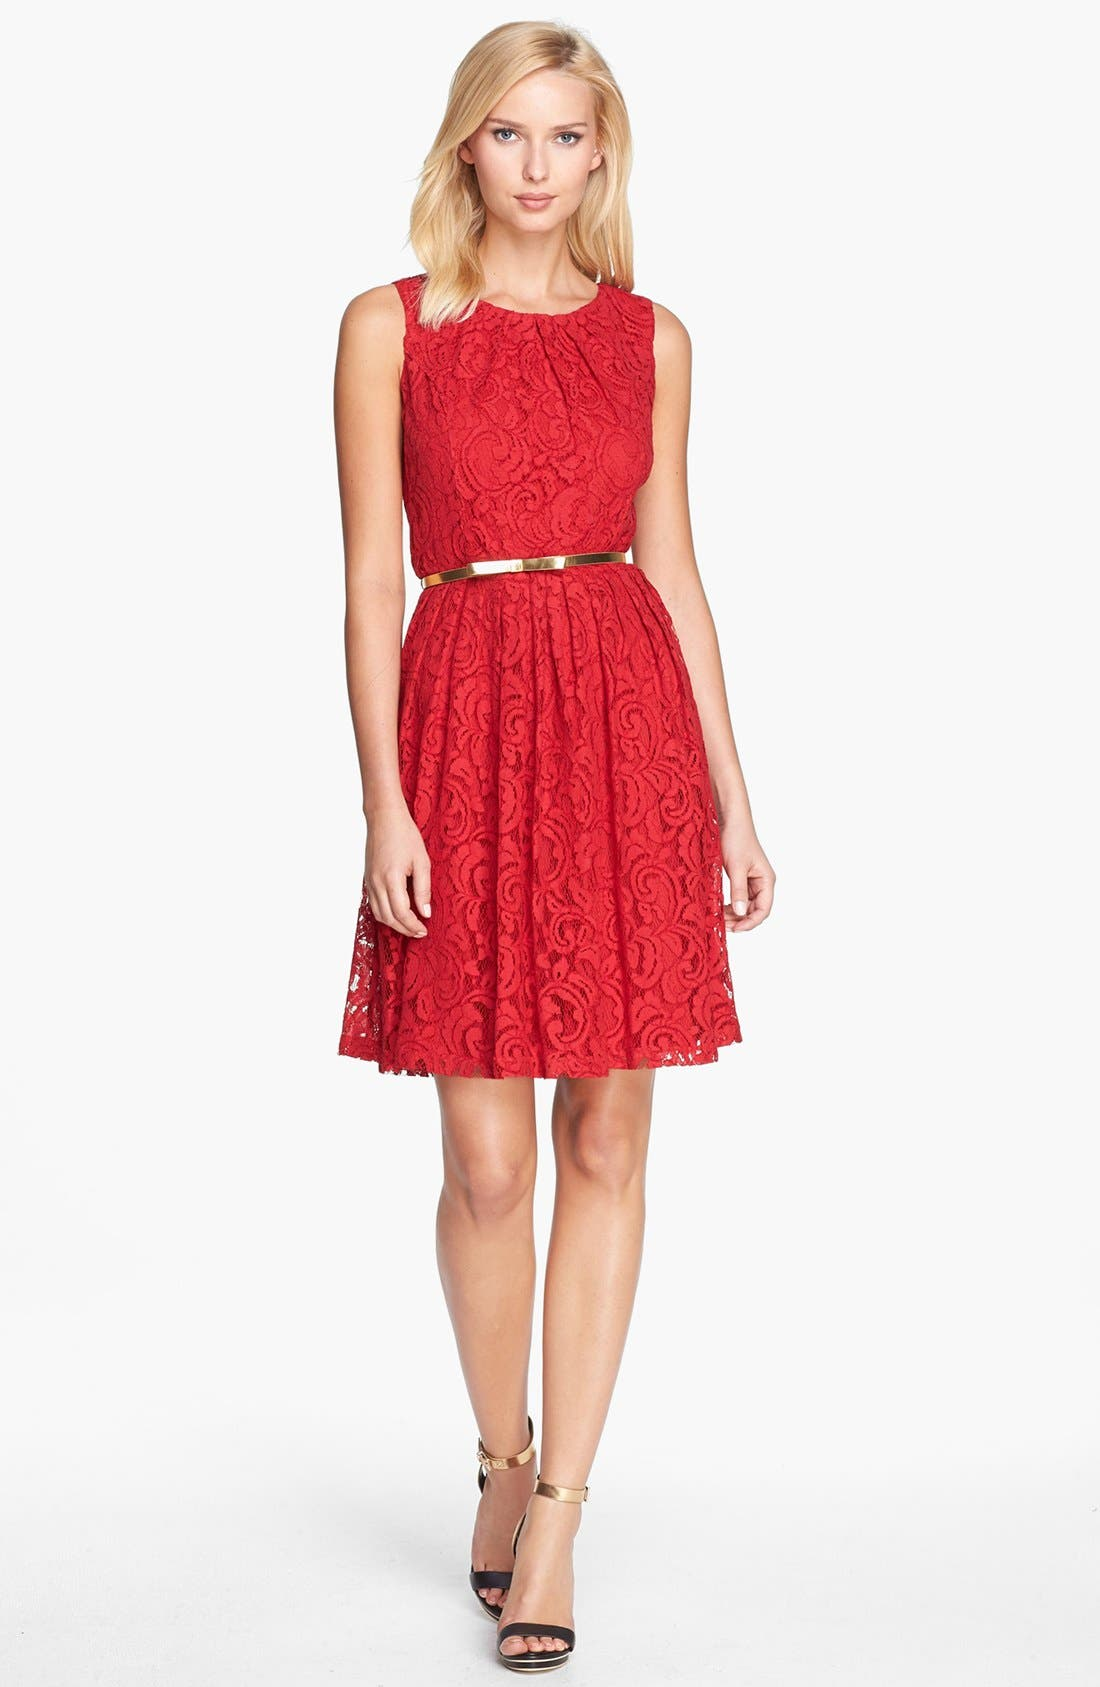 Alternate Image 1 Selected - Ellen Tracy Lace Fit & Flare Dress (Regular & Petite)